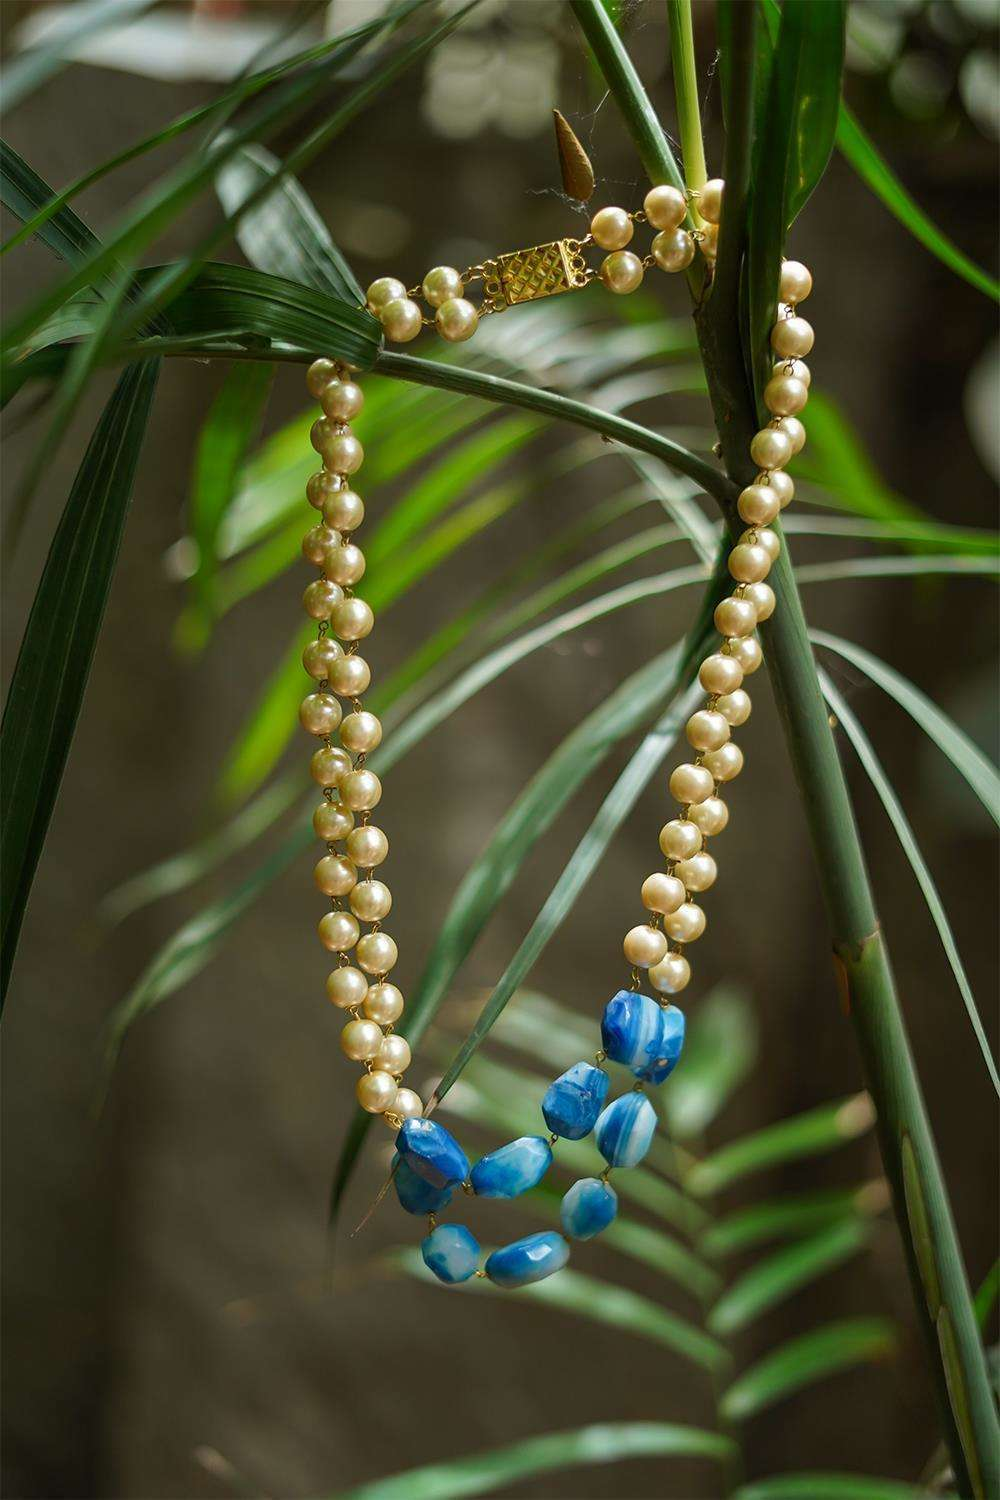 Pearls and Blue Stones String Necklace - House of Blouse